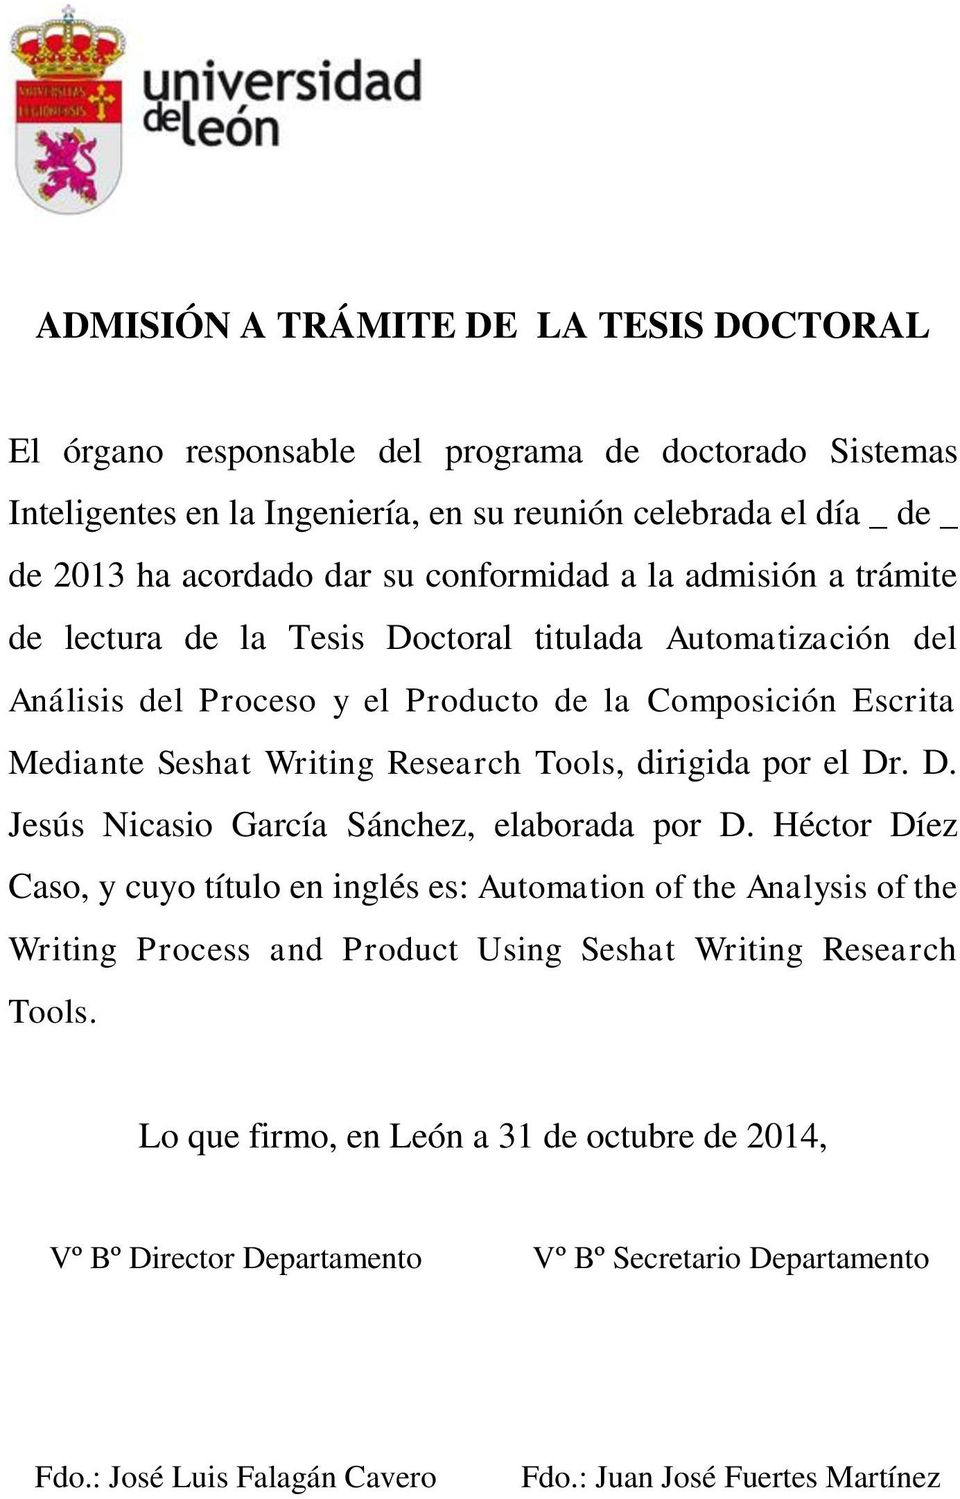 process analisis essay luis espinoza professor wees composition one 29 october 2014 writing process there are many important steps in writing an essay essays are a significant part of any student's grade in most english classes, whether in high school, college, or even those studying for masters and a phd.